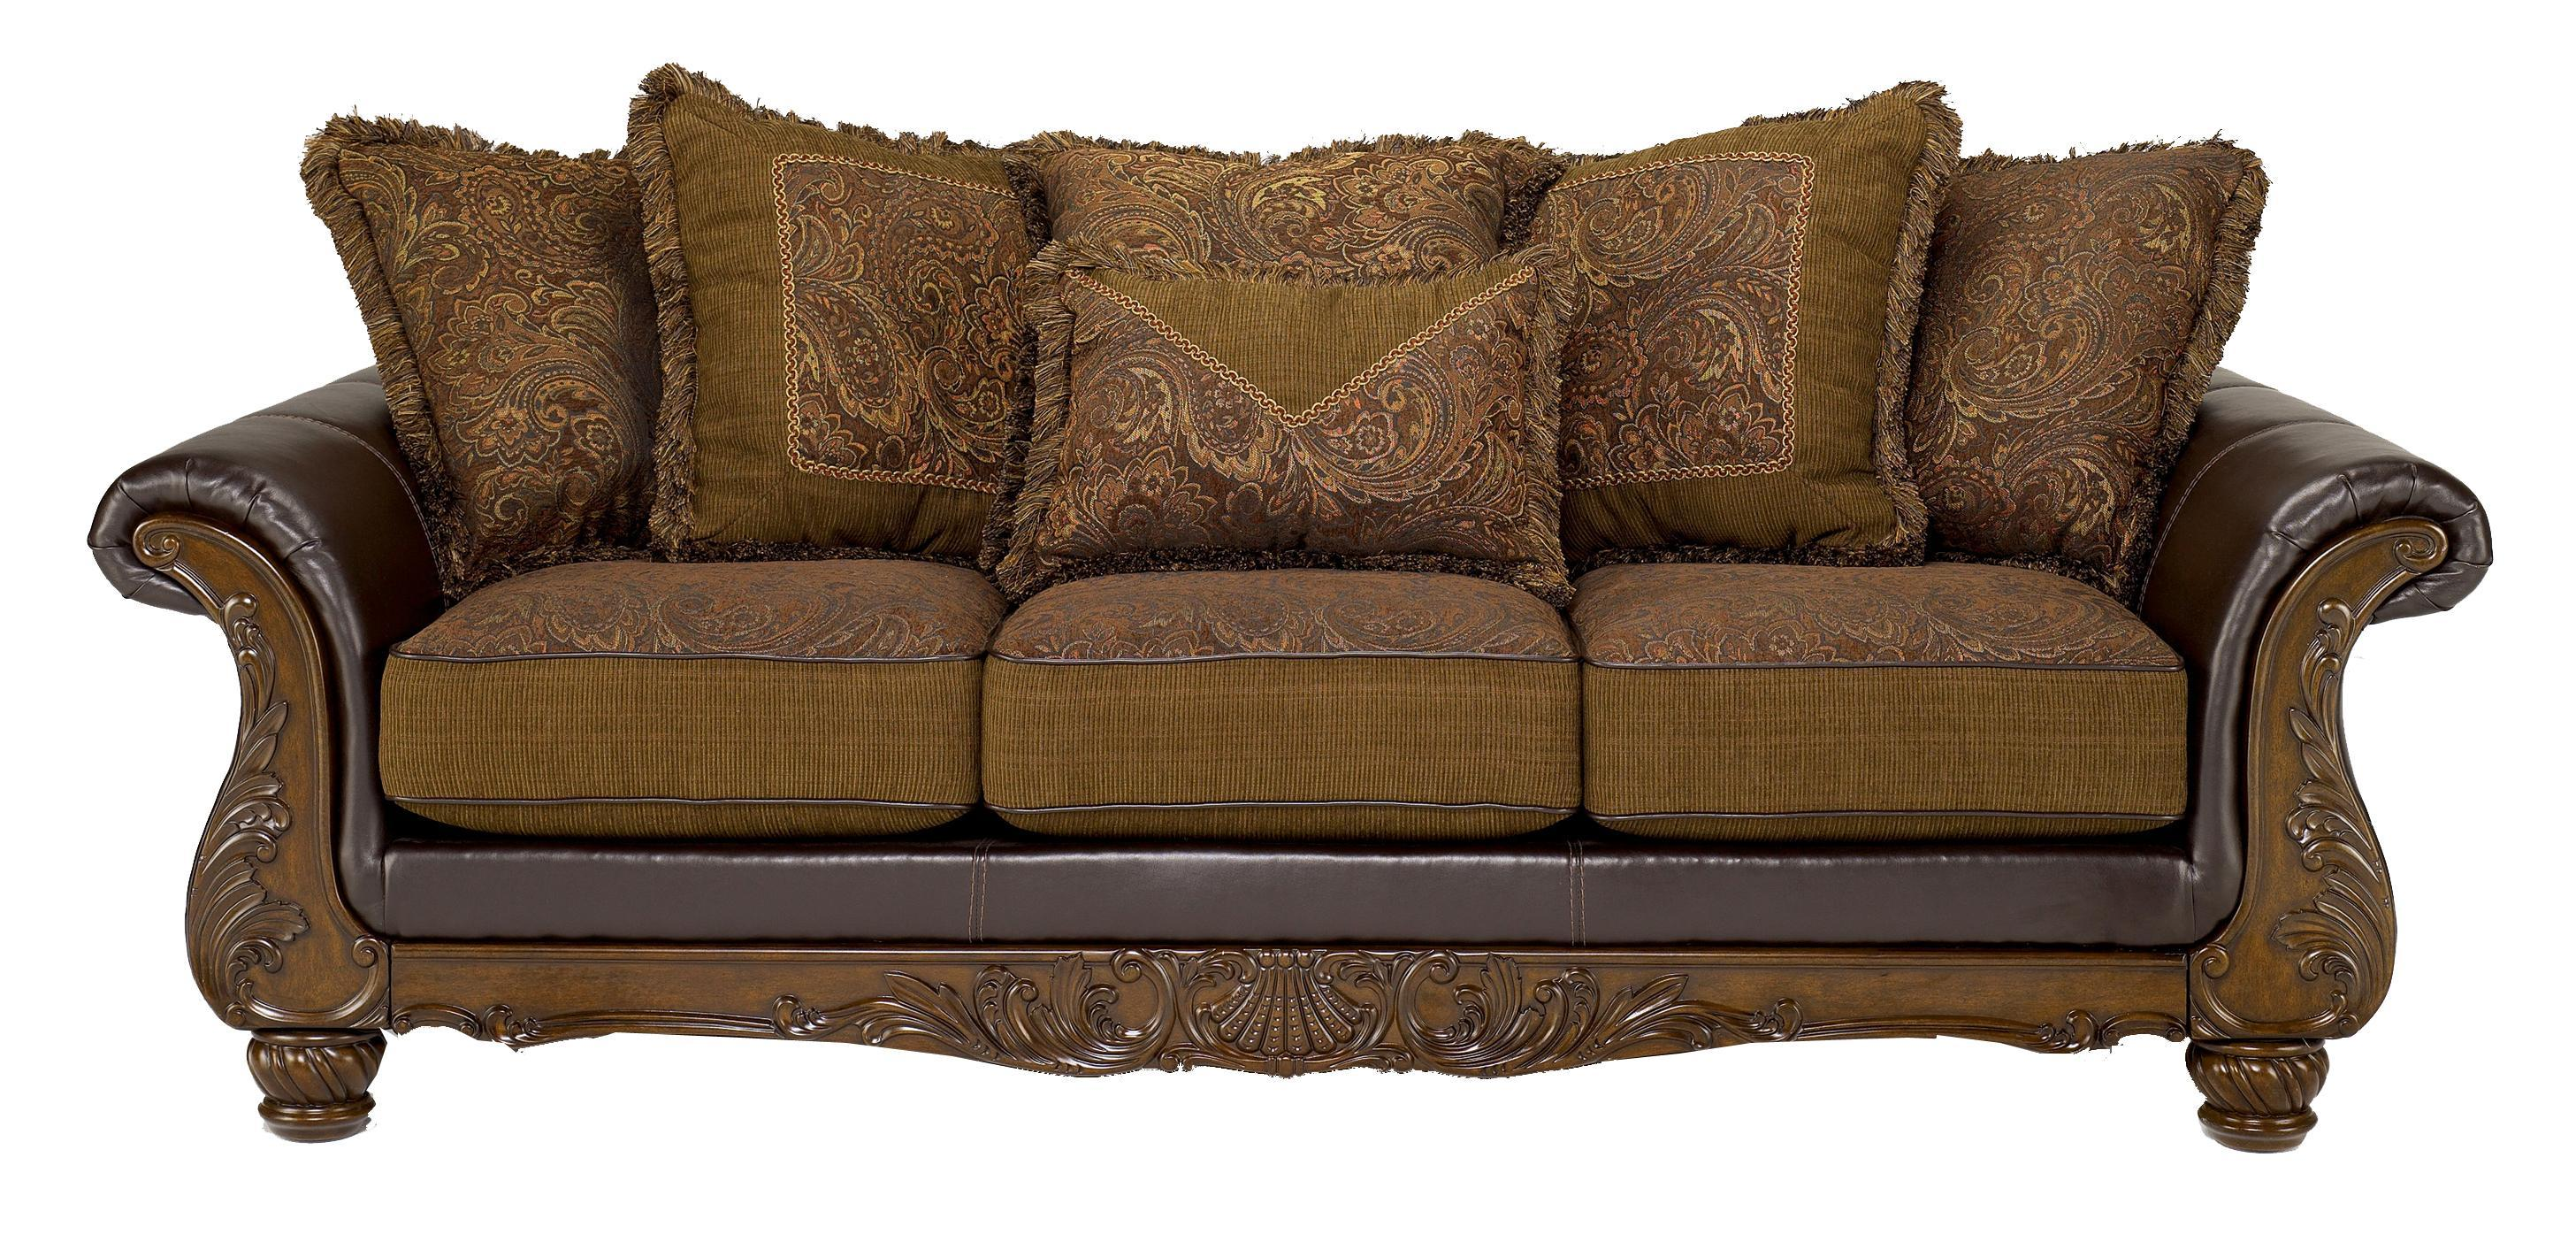 Wilmington - Walnut Traditional Exposed-Wood Sofa with Loose Pillow